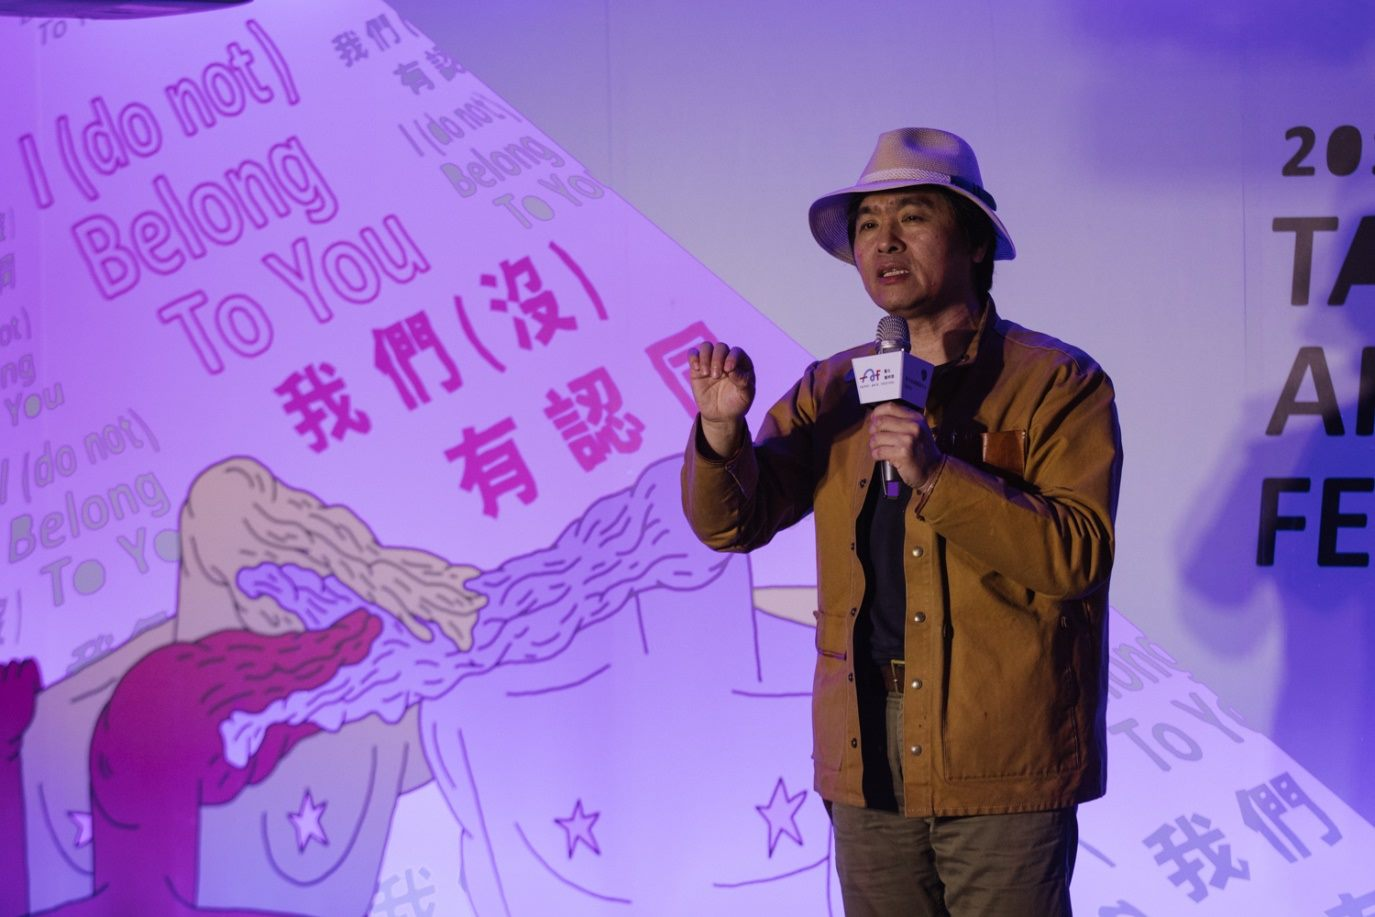 The director of Taipei Performing Arts Center, Wang Meng, explains the theme of this year's festival